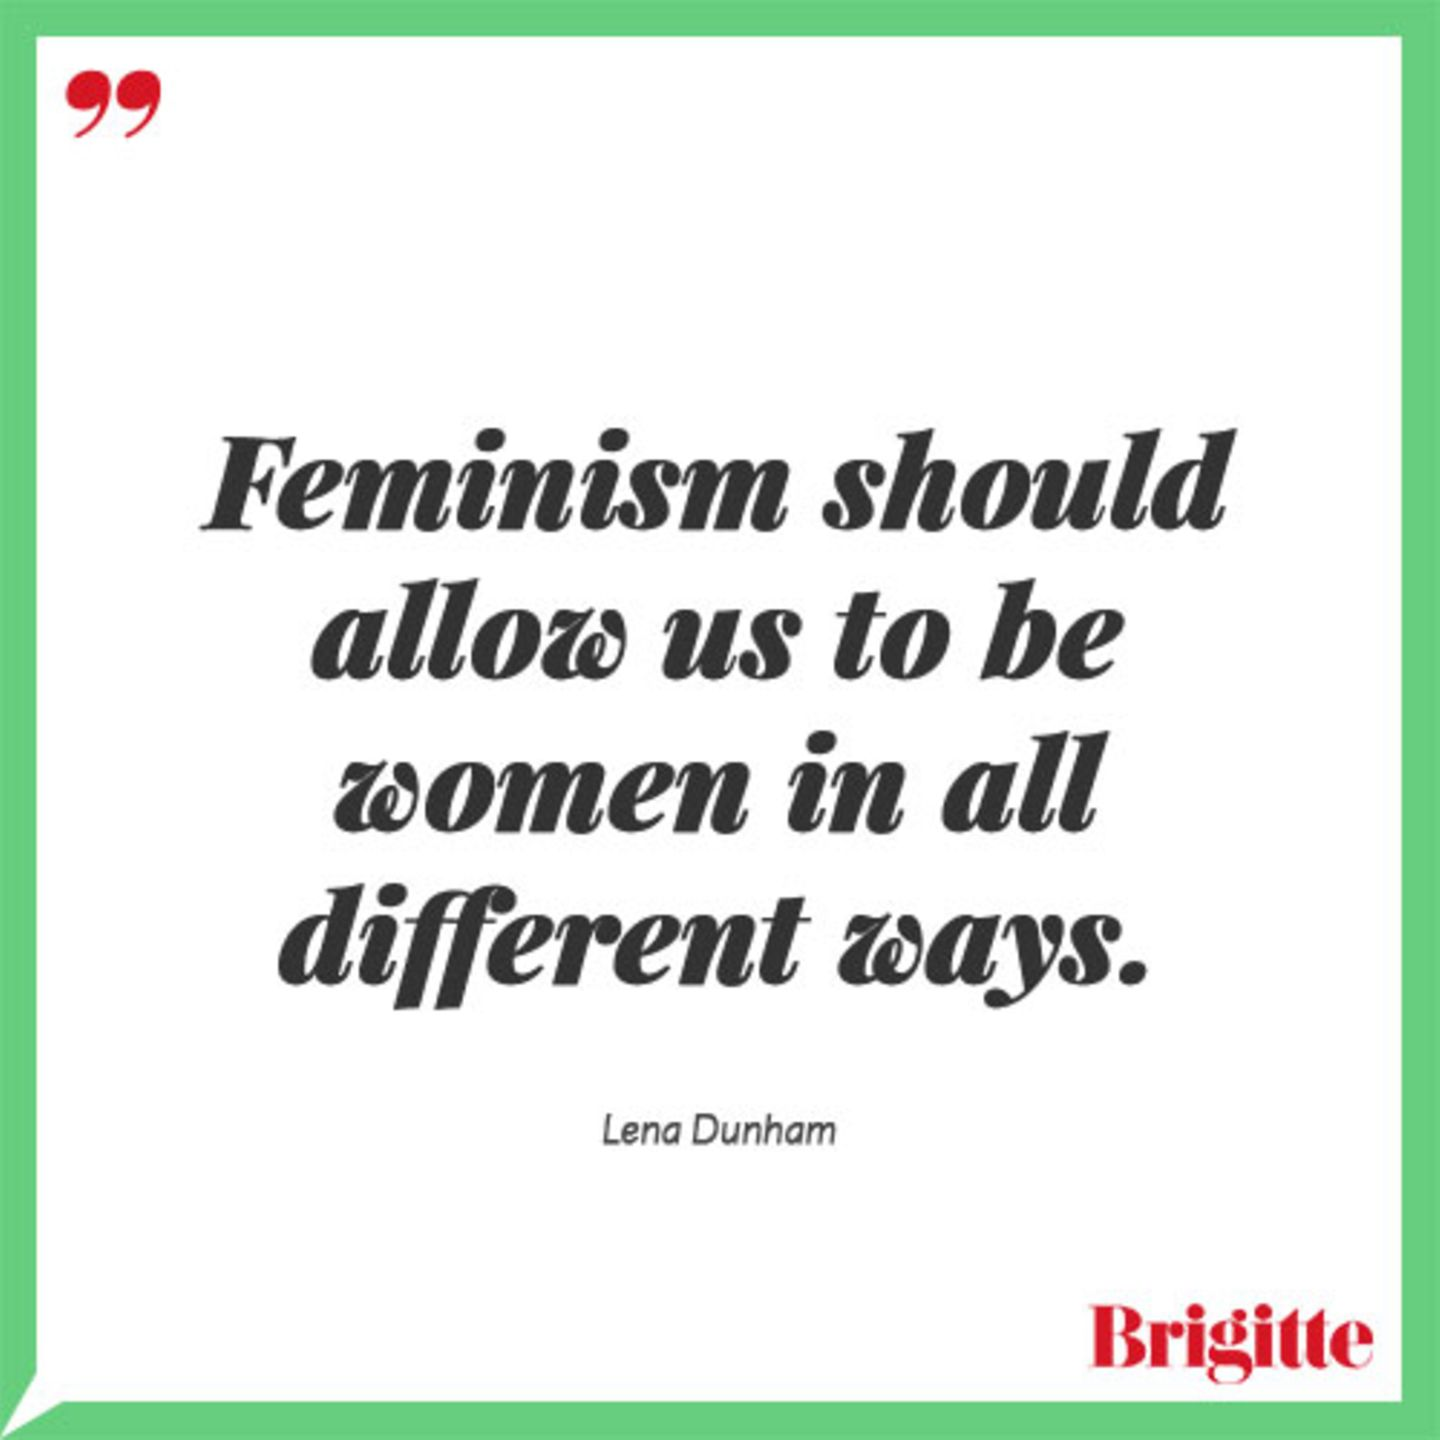 Feminism should allow us to be women in all different ways.